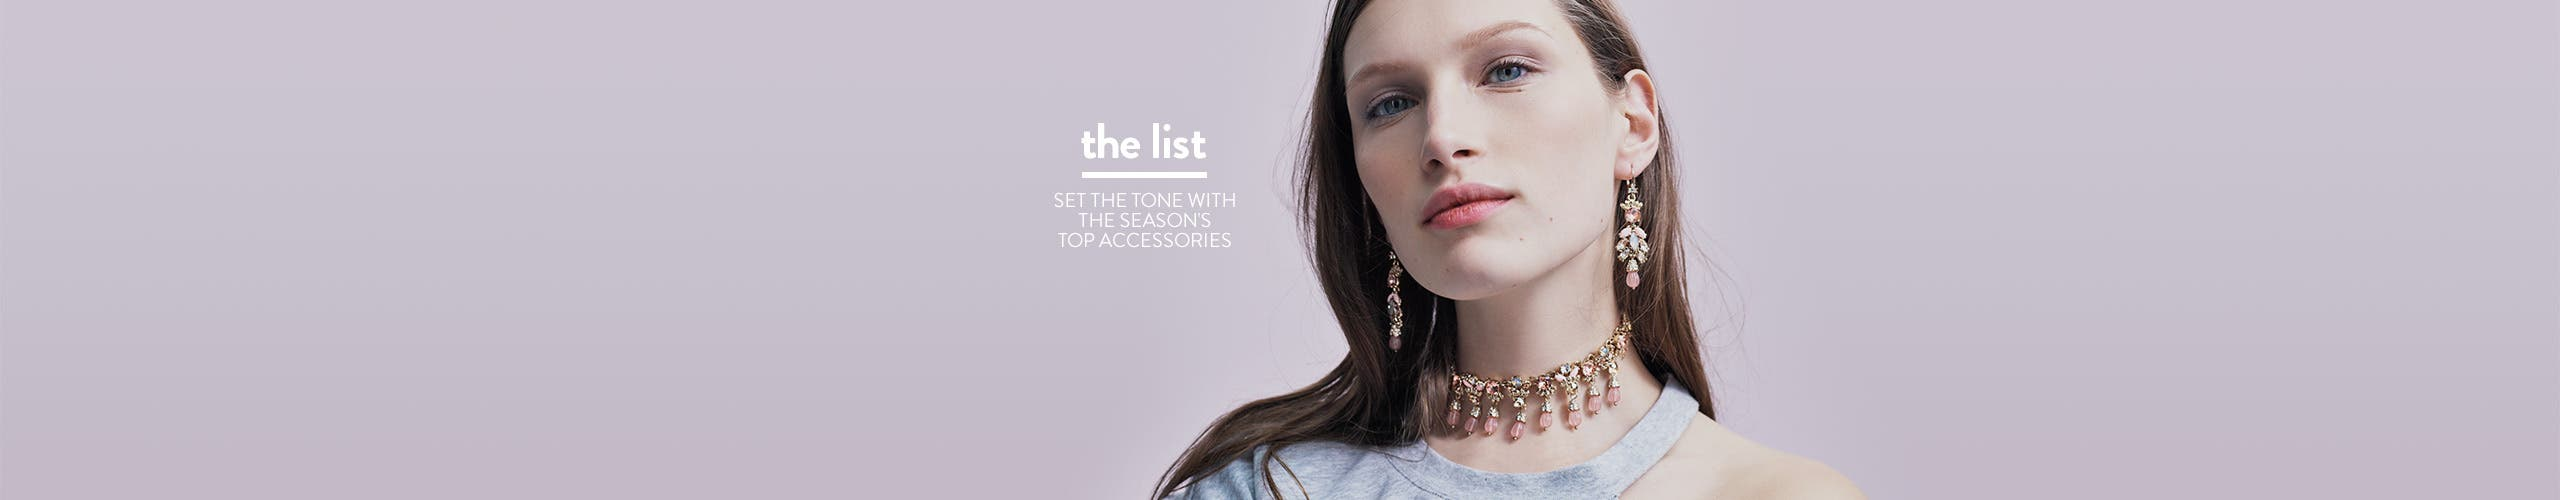 The list: the season's top accessories.